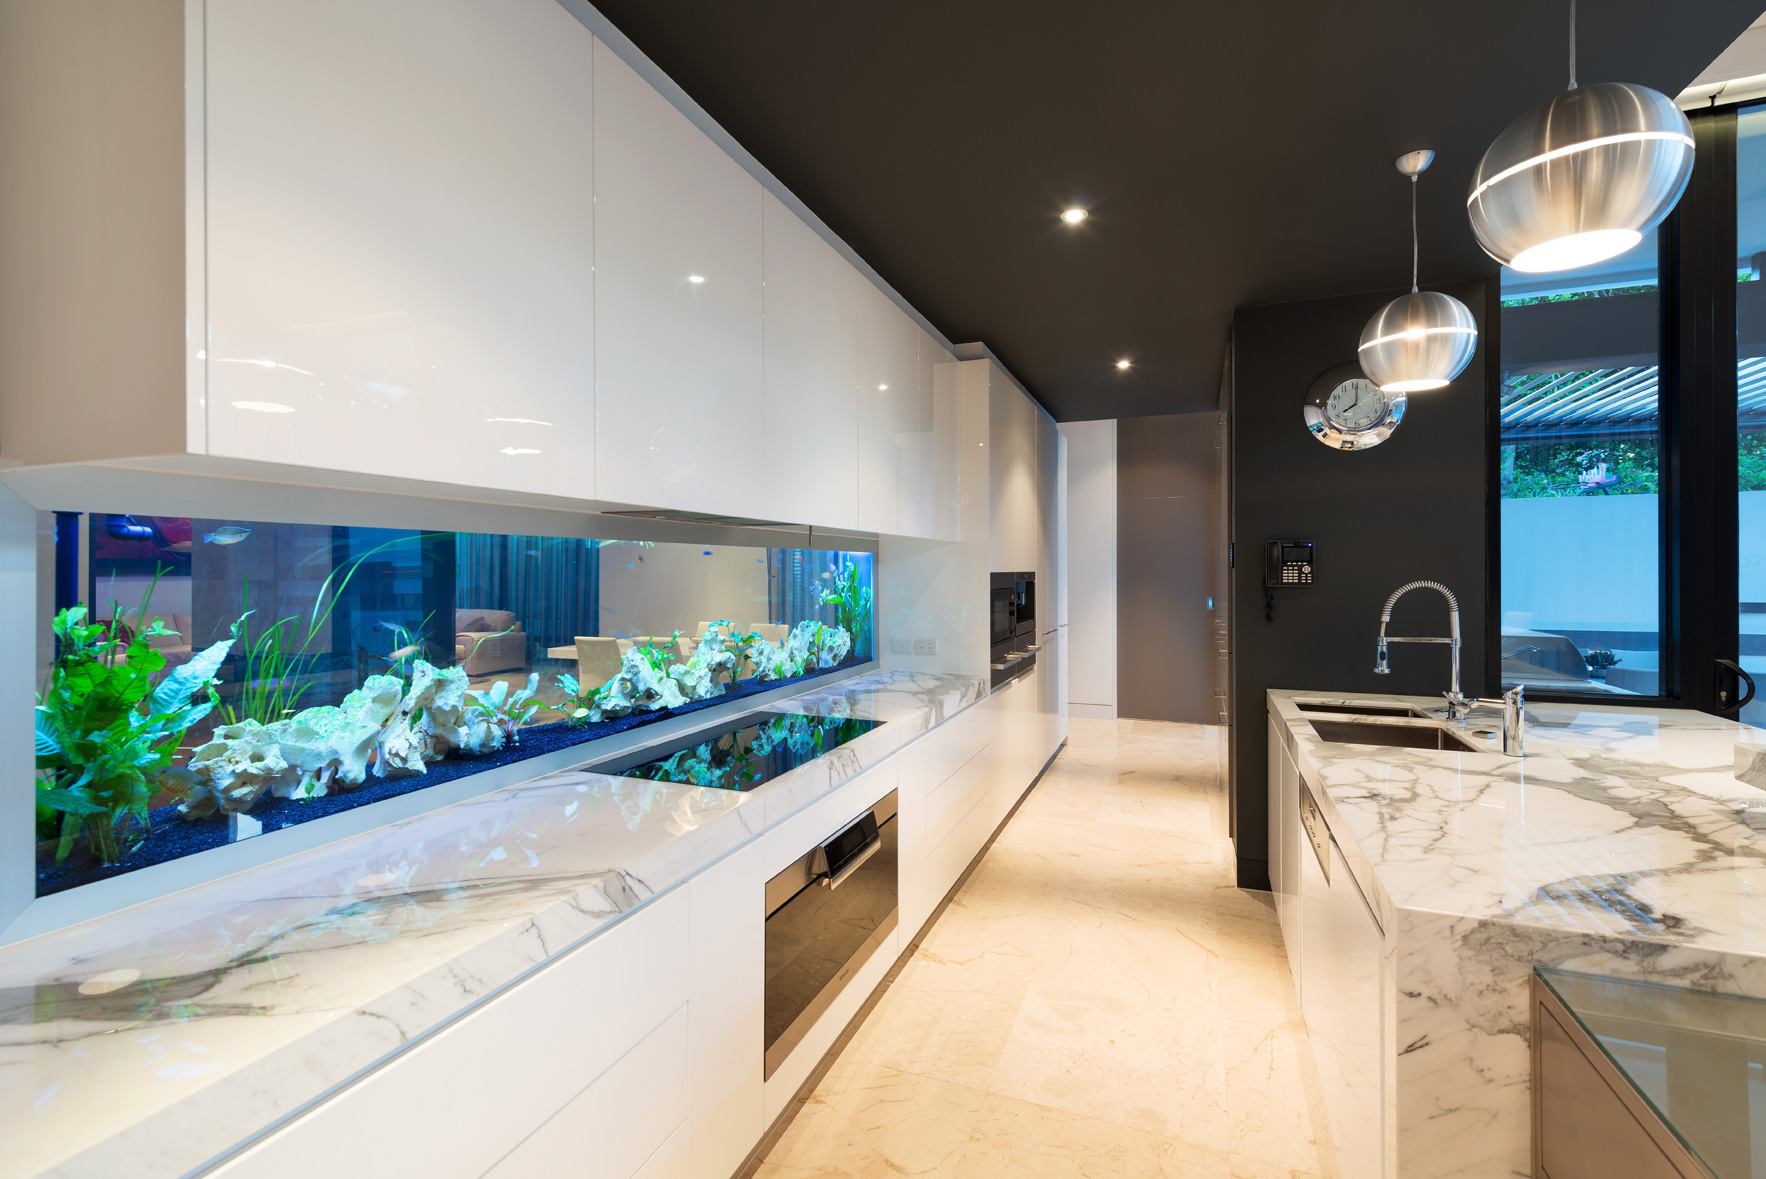 Afia Residential Built In Kitchen 2014 Australian Furnishing Industry Awards